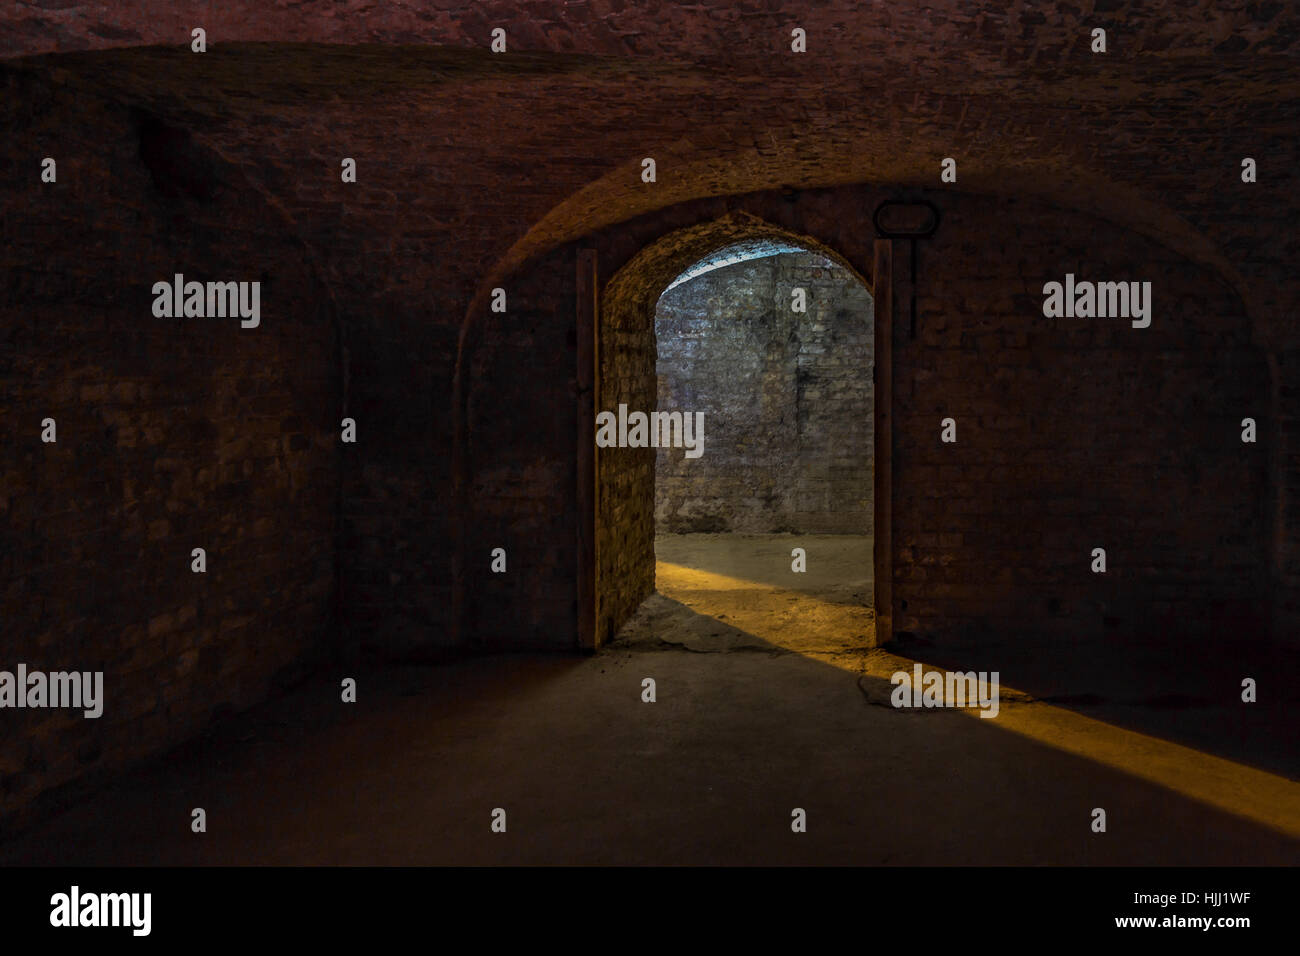 Cellar Room, shot shows a dark cellar with a beam of light at the entrance and giving a shadowy view of the cellar. - Stock Image